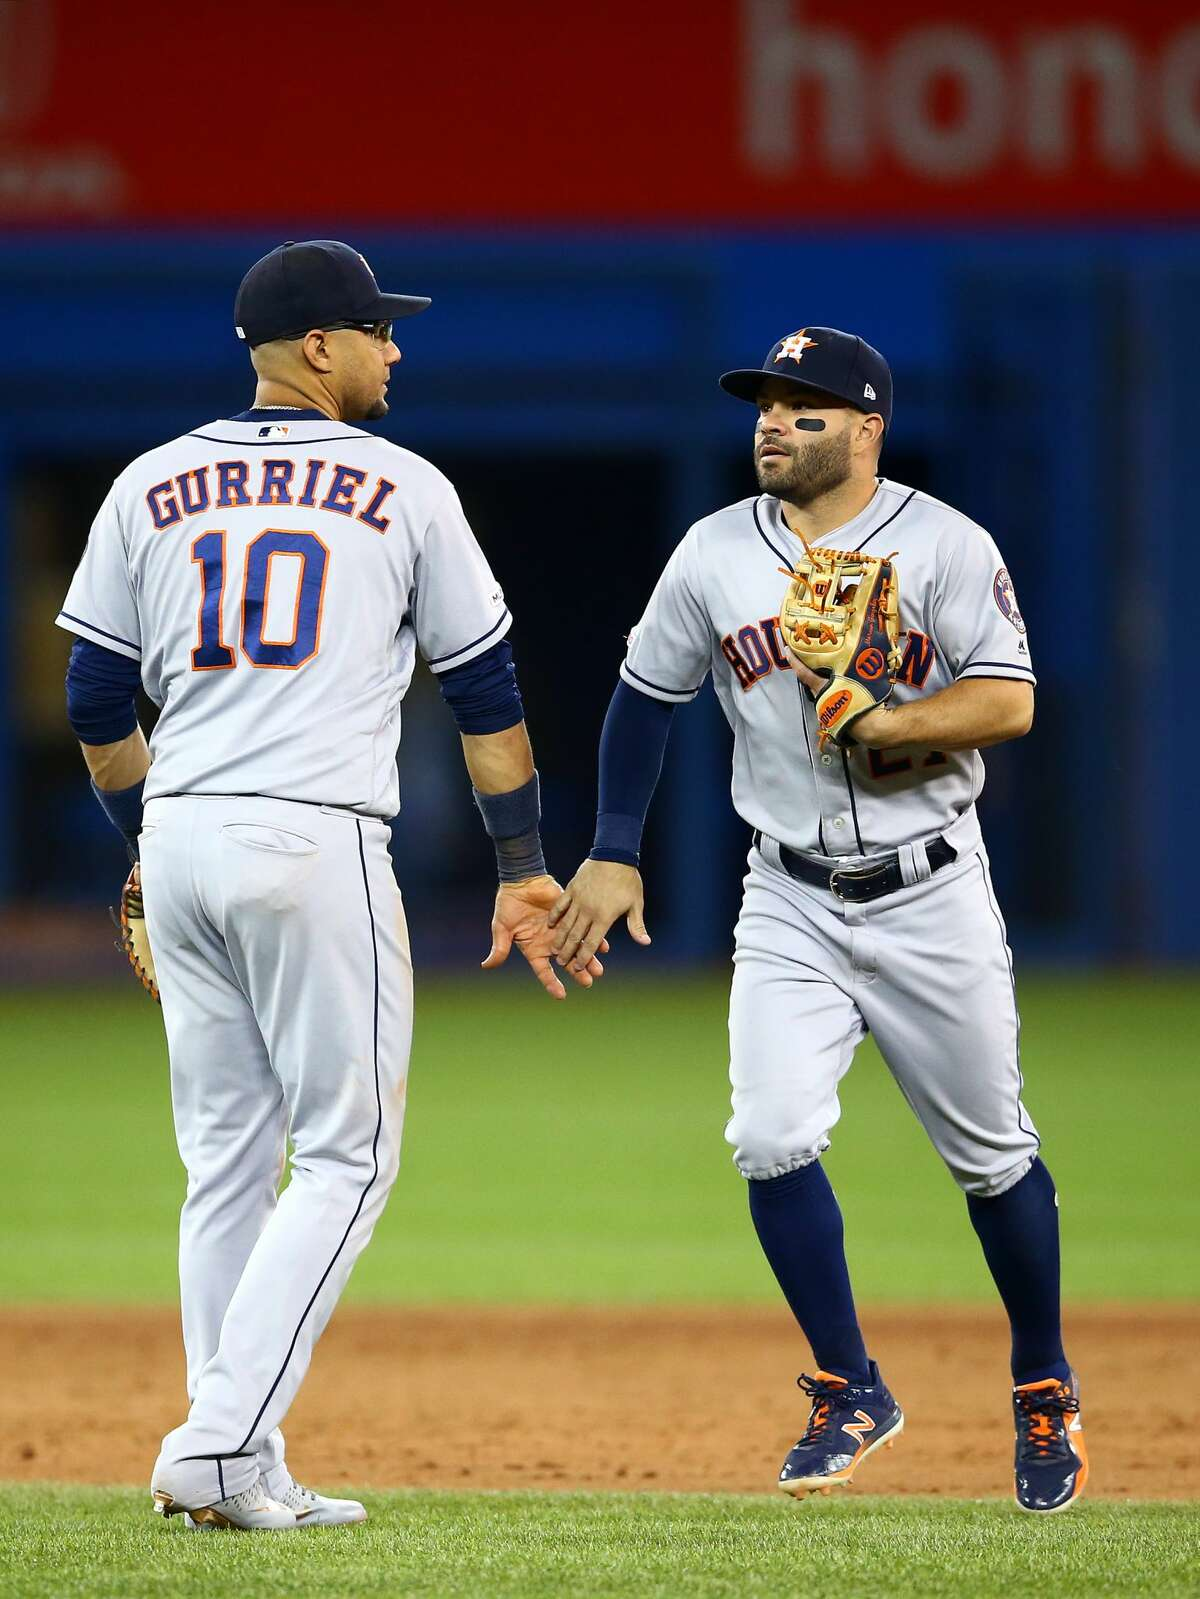 TORONTO, ON - AUGUST 30: Yuli Gurriel #10 and Jose Altuve #27 of the Houston Astros celebrate following victory during a MLB game against the Toronto Blue Jays at Rogers Centre on August 30, 2019 in Toronto, Canada. (Photo by Vaughn Ridley/Getty Images)